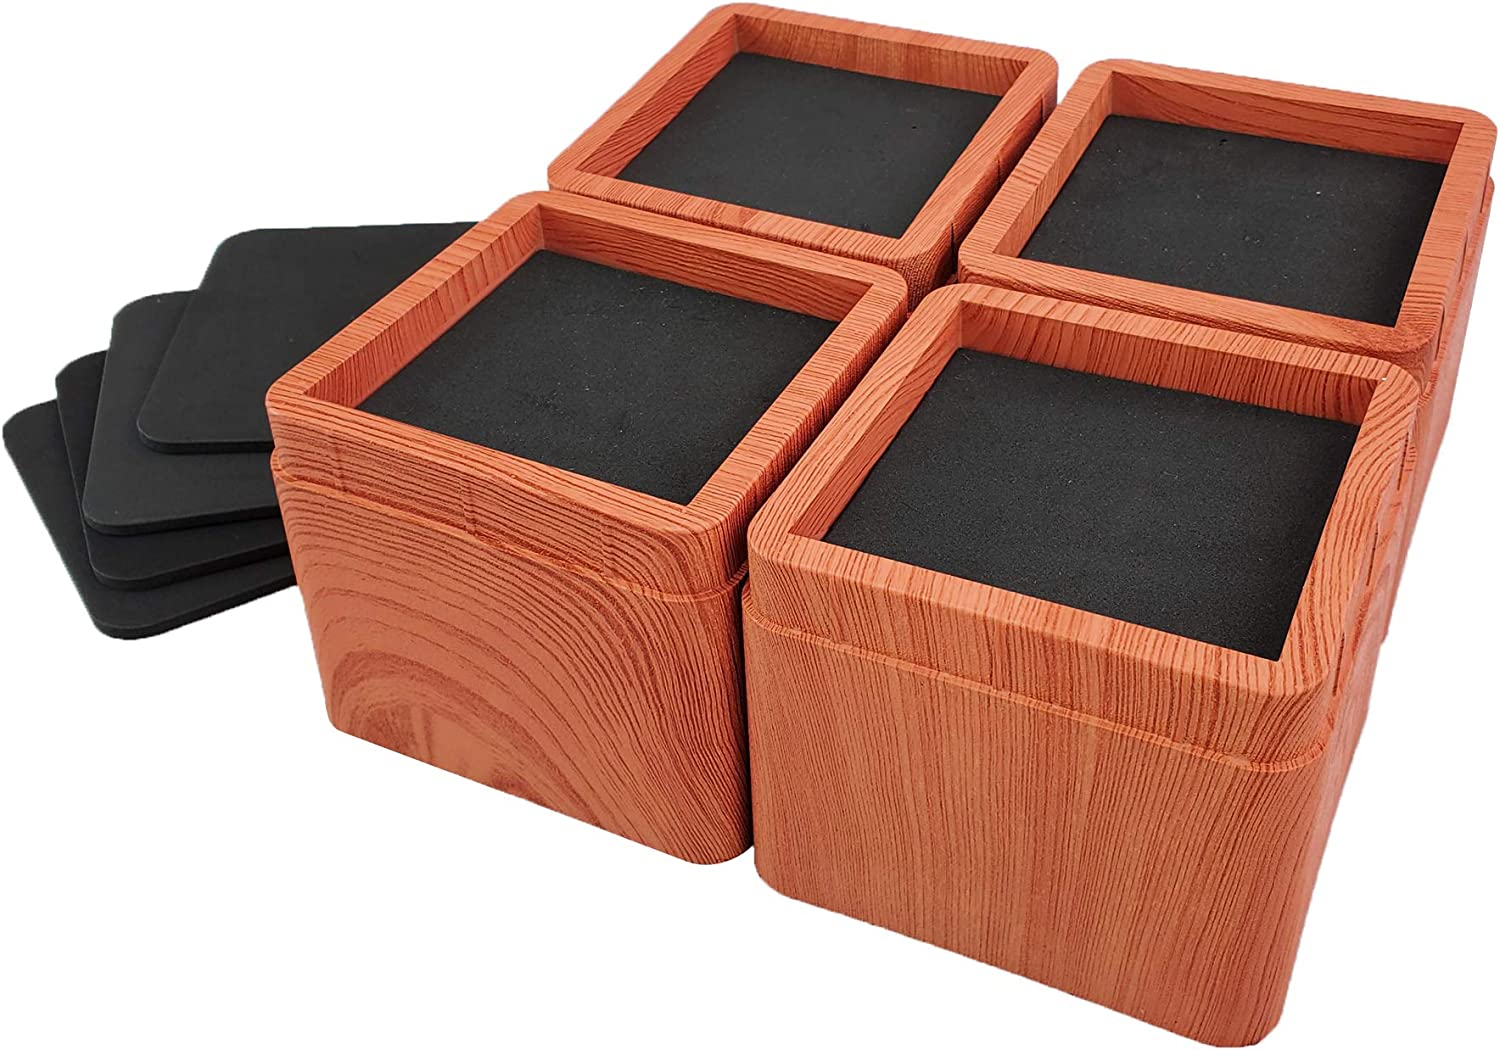 4 Packs Durable and Stackable Square Bed Lifts Lifts Up to 10000 LBs Per Riser aspeike 3 or 6 INCH Bed and Furniture Risers Black A Large Area of Groove with Anti Slip Mat